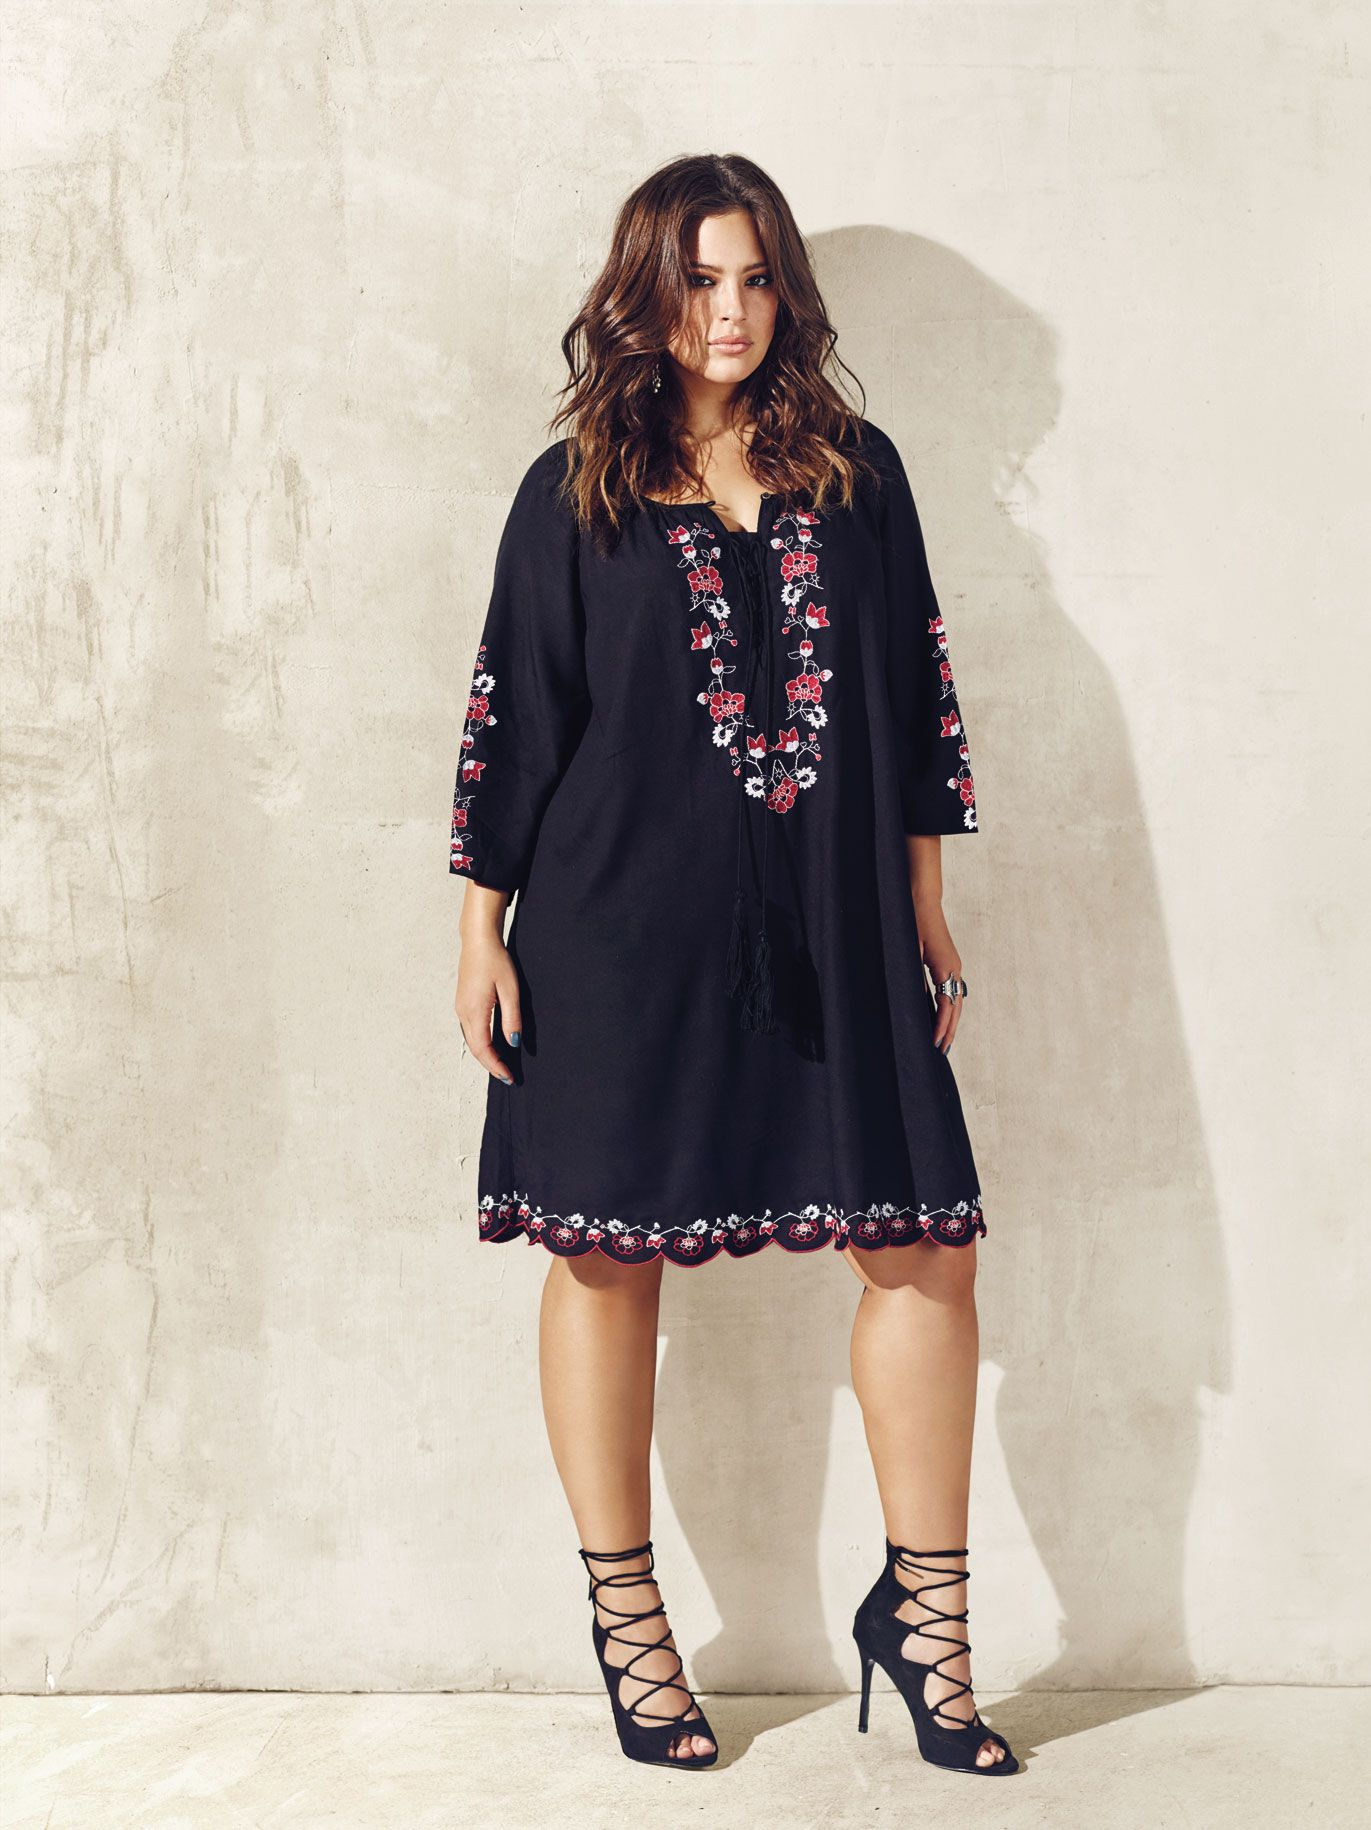 5ade13a1b5e10 Love   Legend boho embroidered dress from Addition Elle spring 2016 plus  size fashion